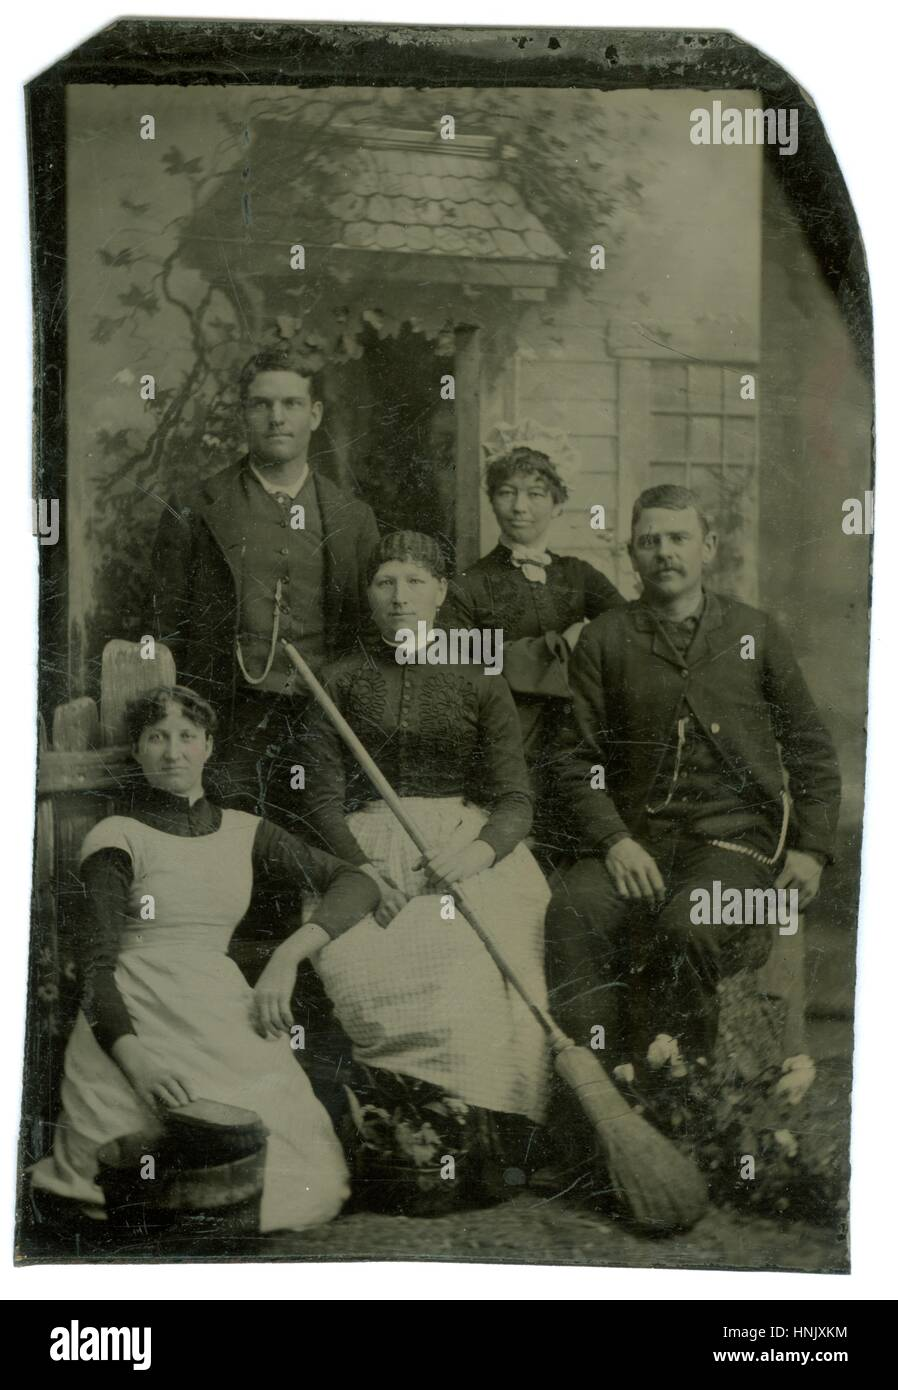 Housekeeping staff having their photo taken,1860s. Note the scrub bucket and brush lower left, posed flowers next - Stock Image